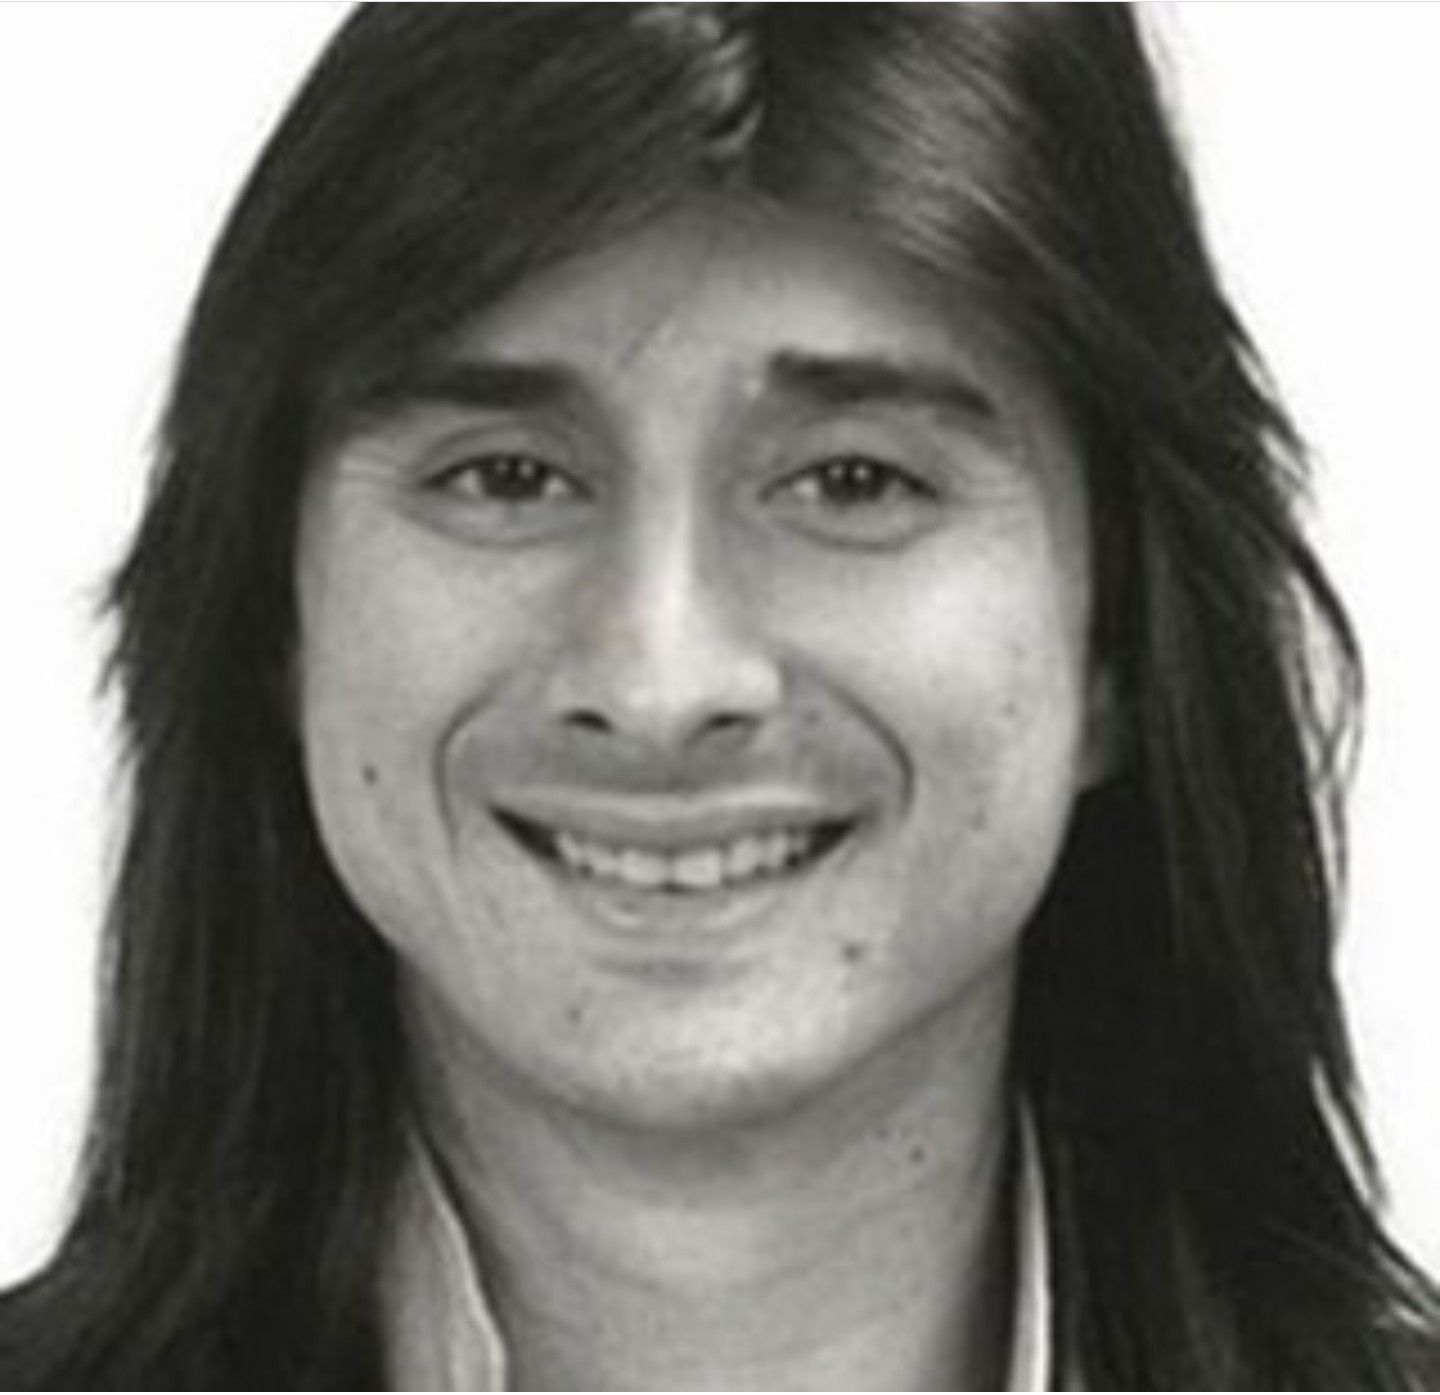 Pin by Susan Marion on steve perry/journey Steve perry